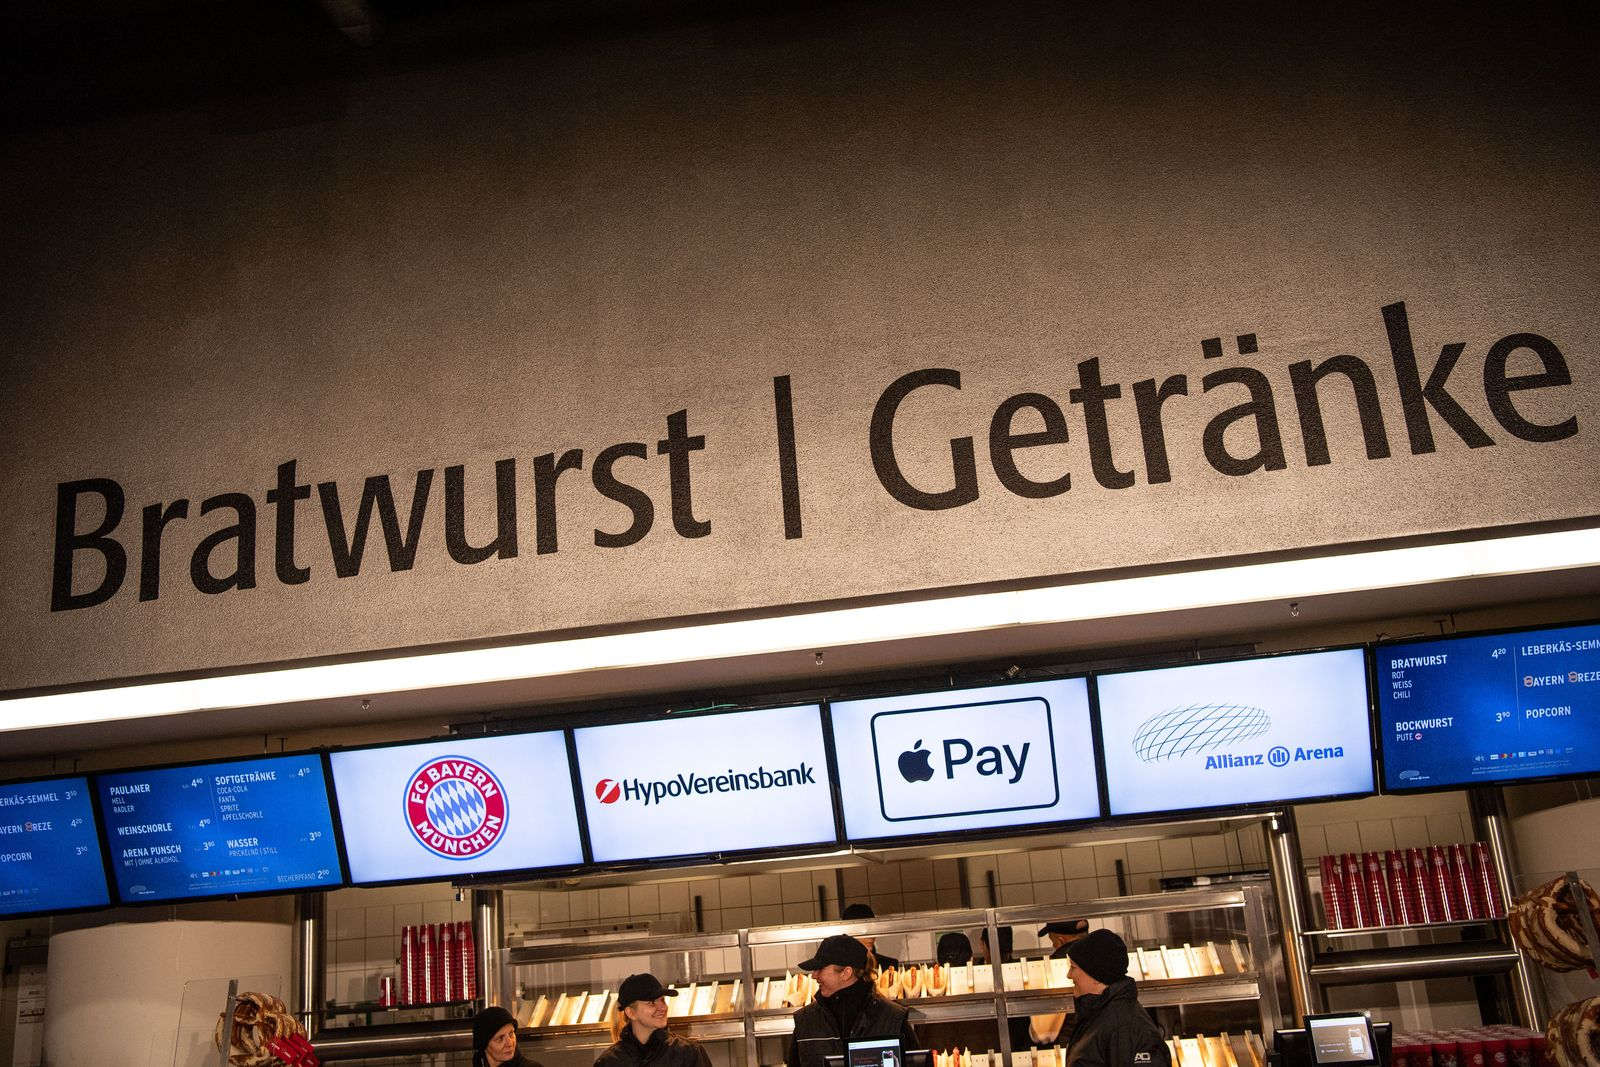 Apple Pay in Allianz Arena